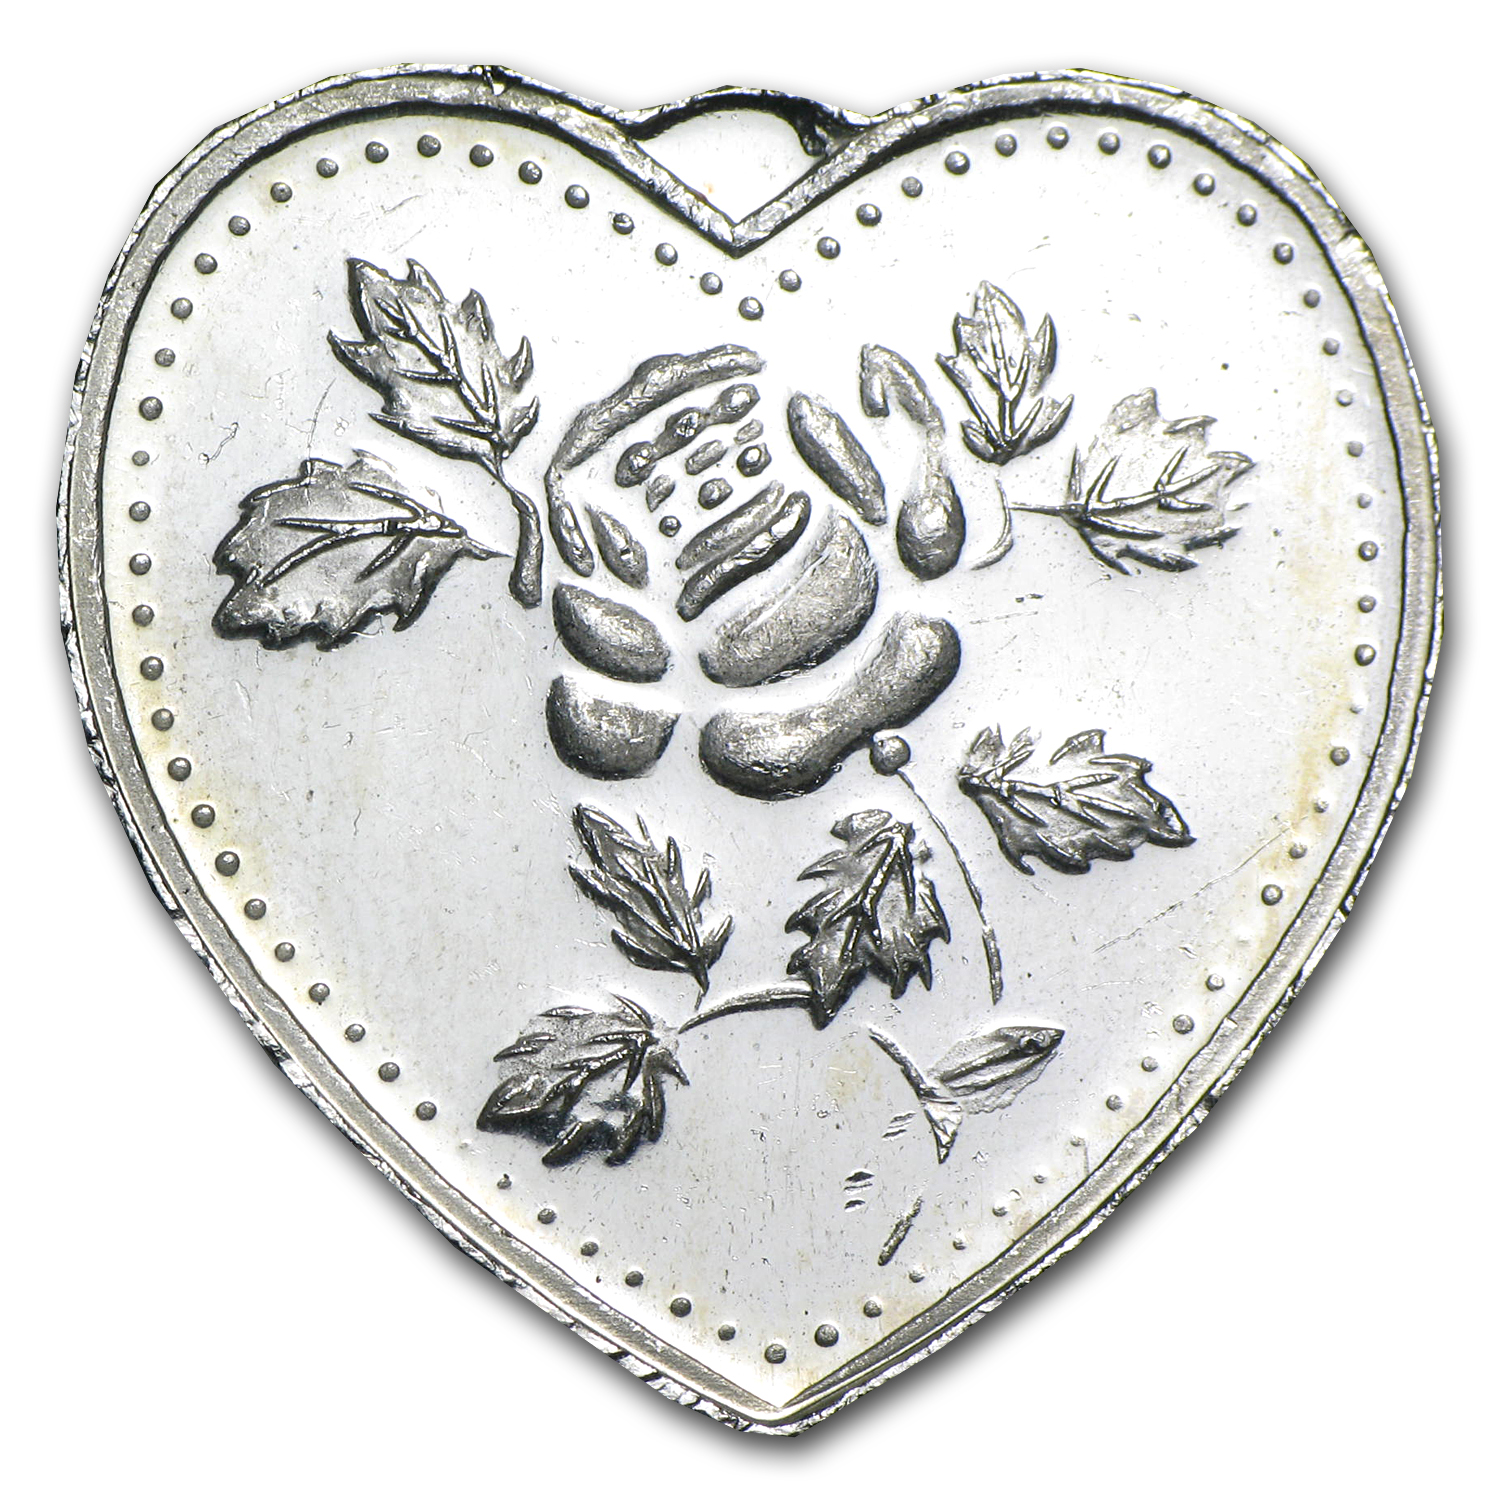 1/2 oz Silver Heart - For Someone Special (Rose)